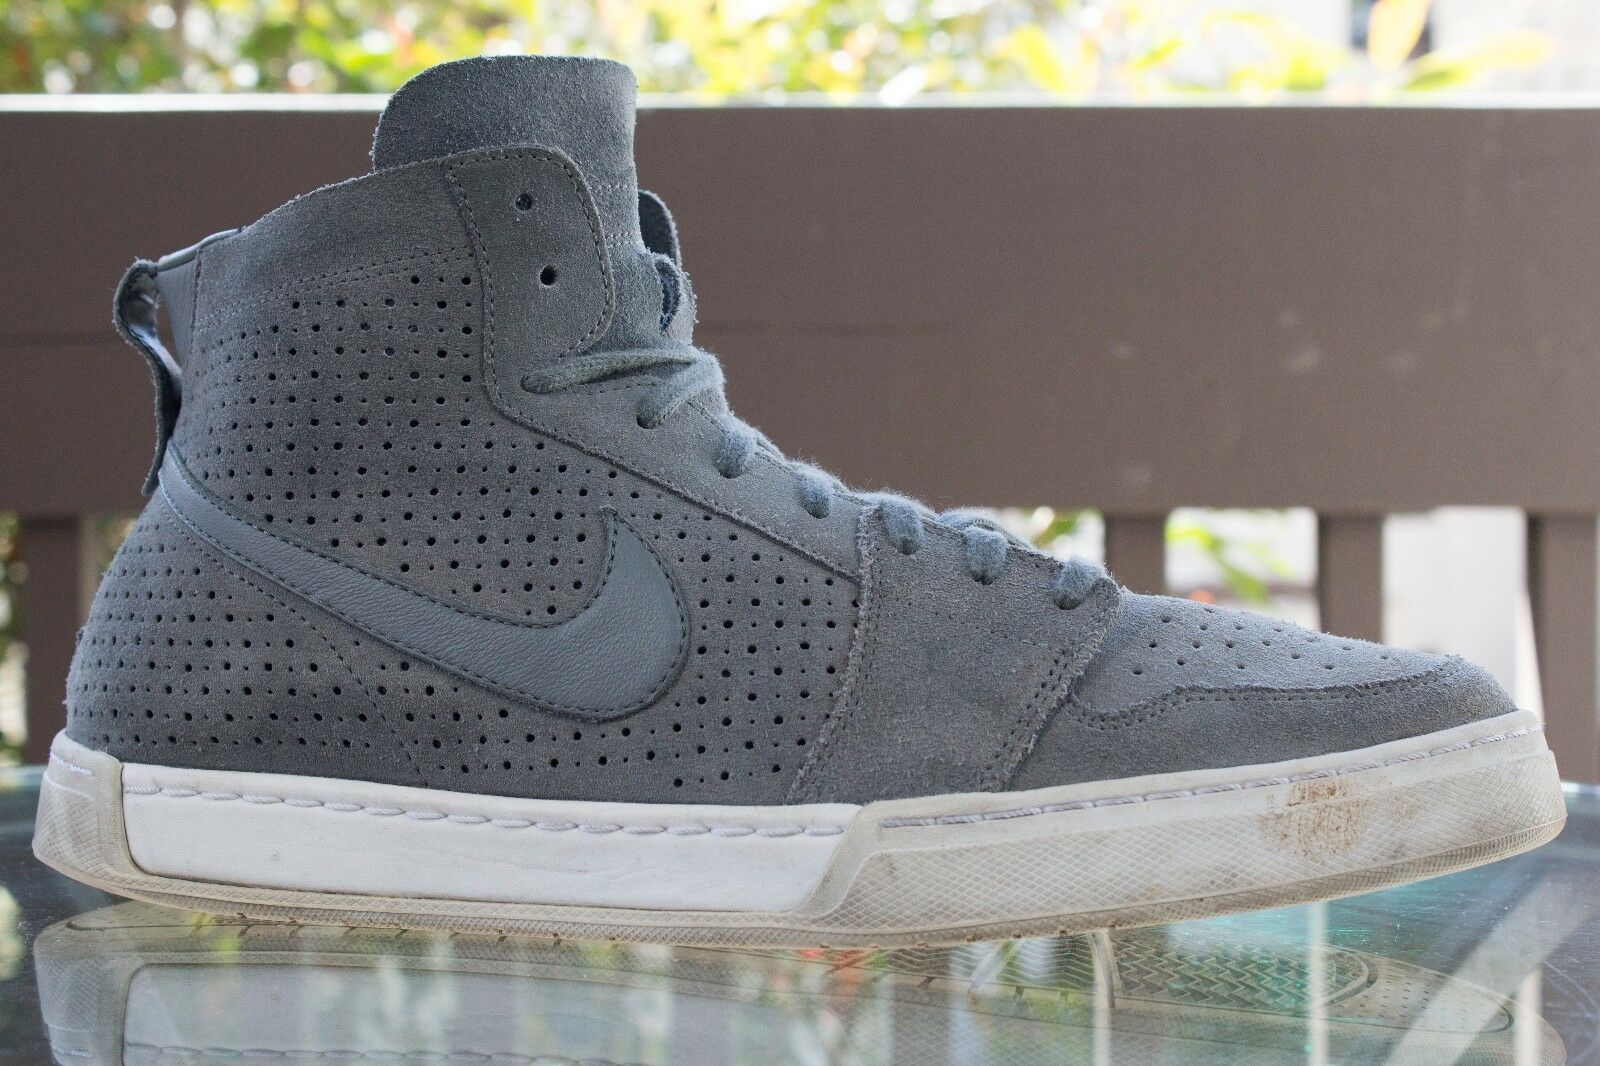 Nike Air Royal Mid Lite Grey Suede Shoes Sneakers 13 Mens 434493-008 Great discount